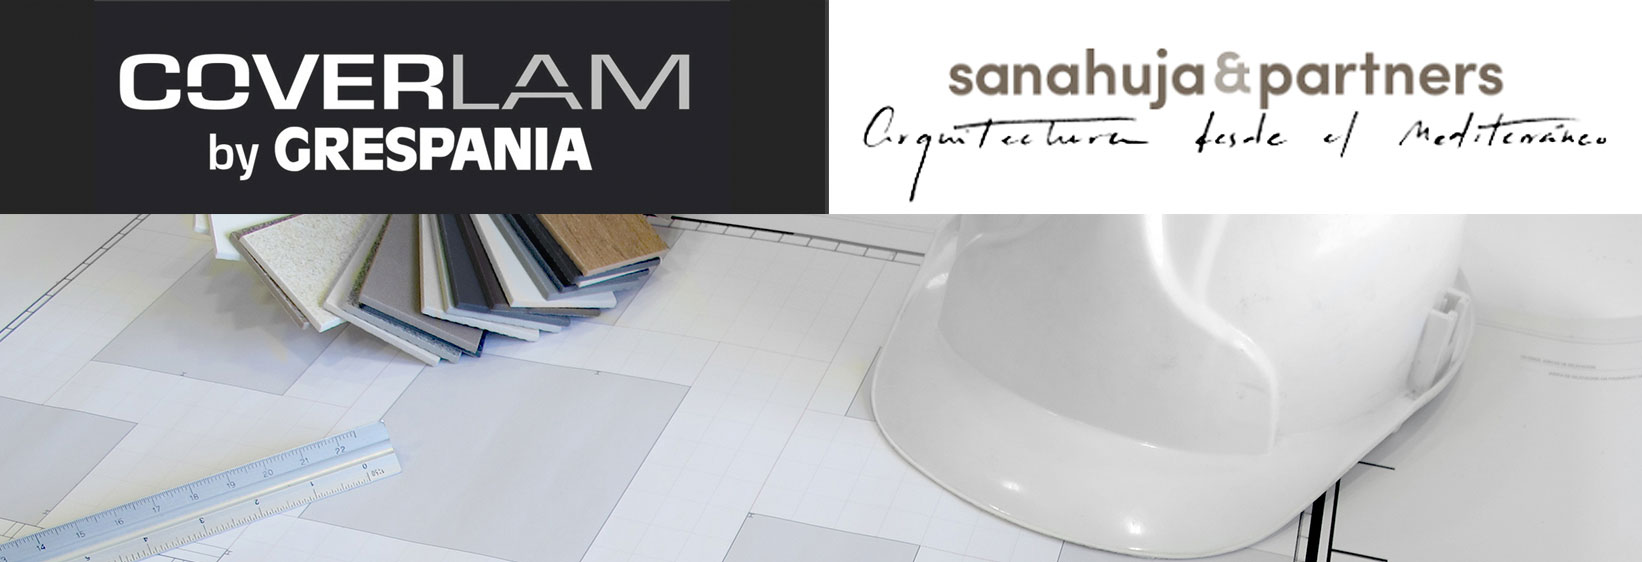 GRESPANIA PUTS THE FINISHING TOUCHES TO ITS NEW SHOWROOM DESIGNED EXCLUSIVELY FOR COVERLAM.